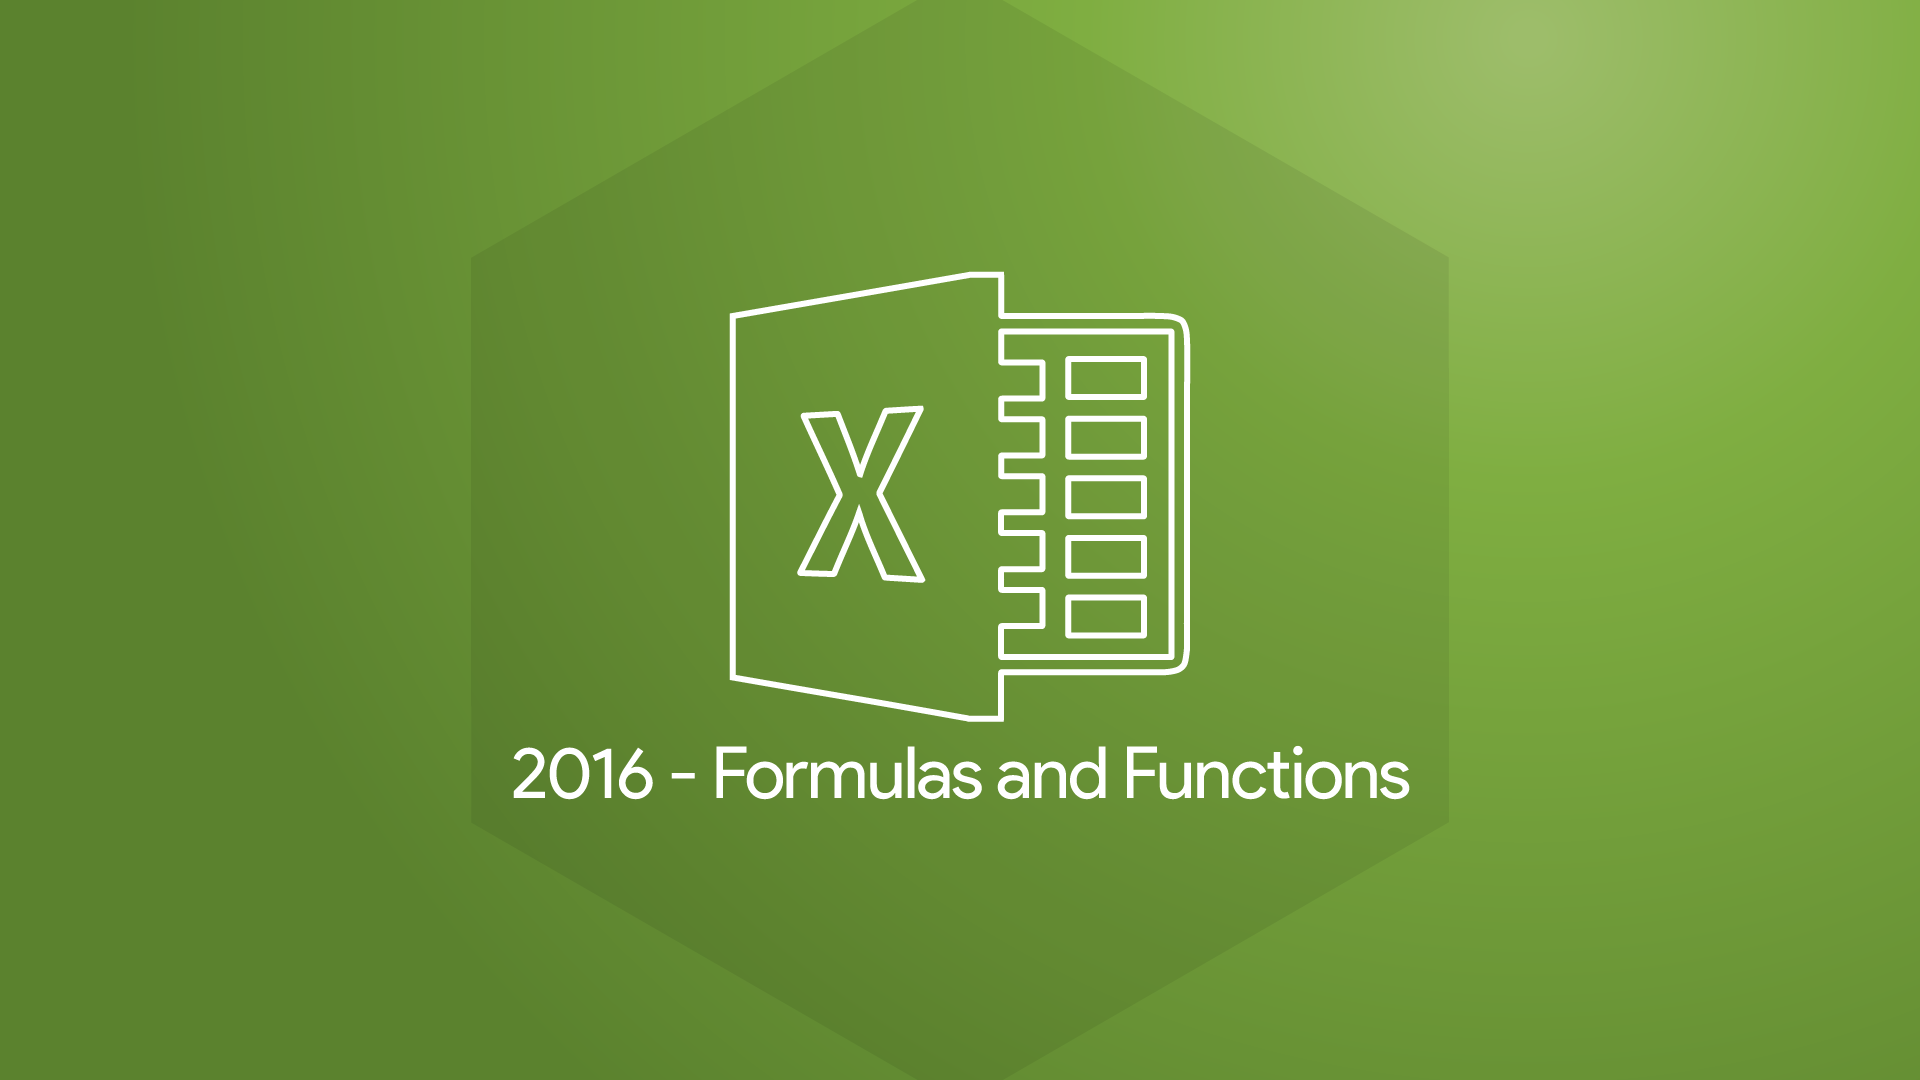 Excel 2016 - Frequently Used Formulas and Functions